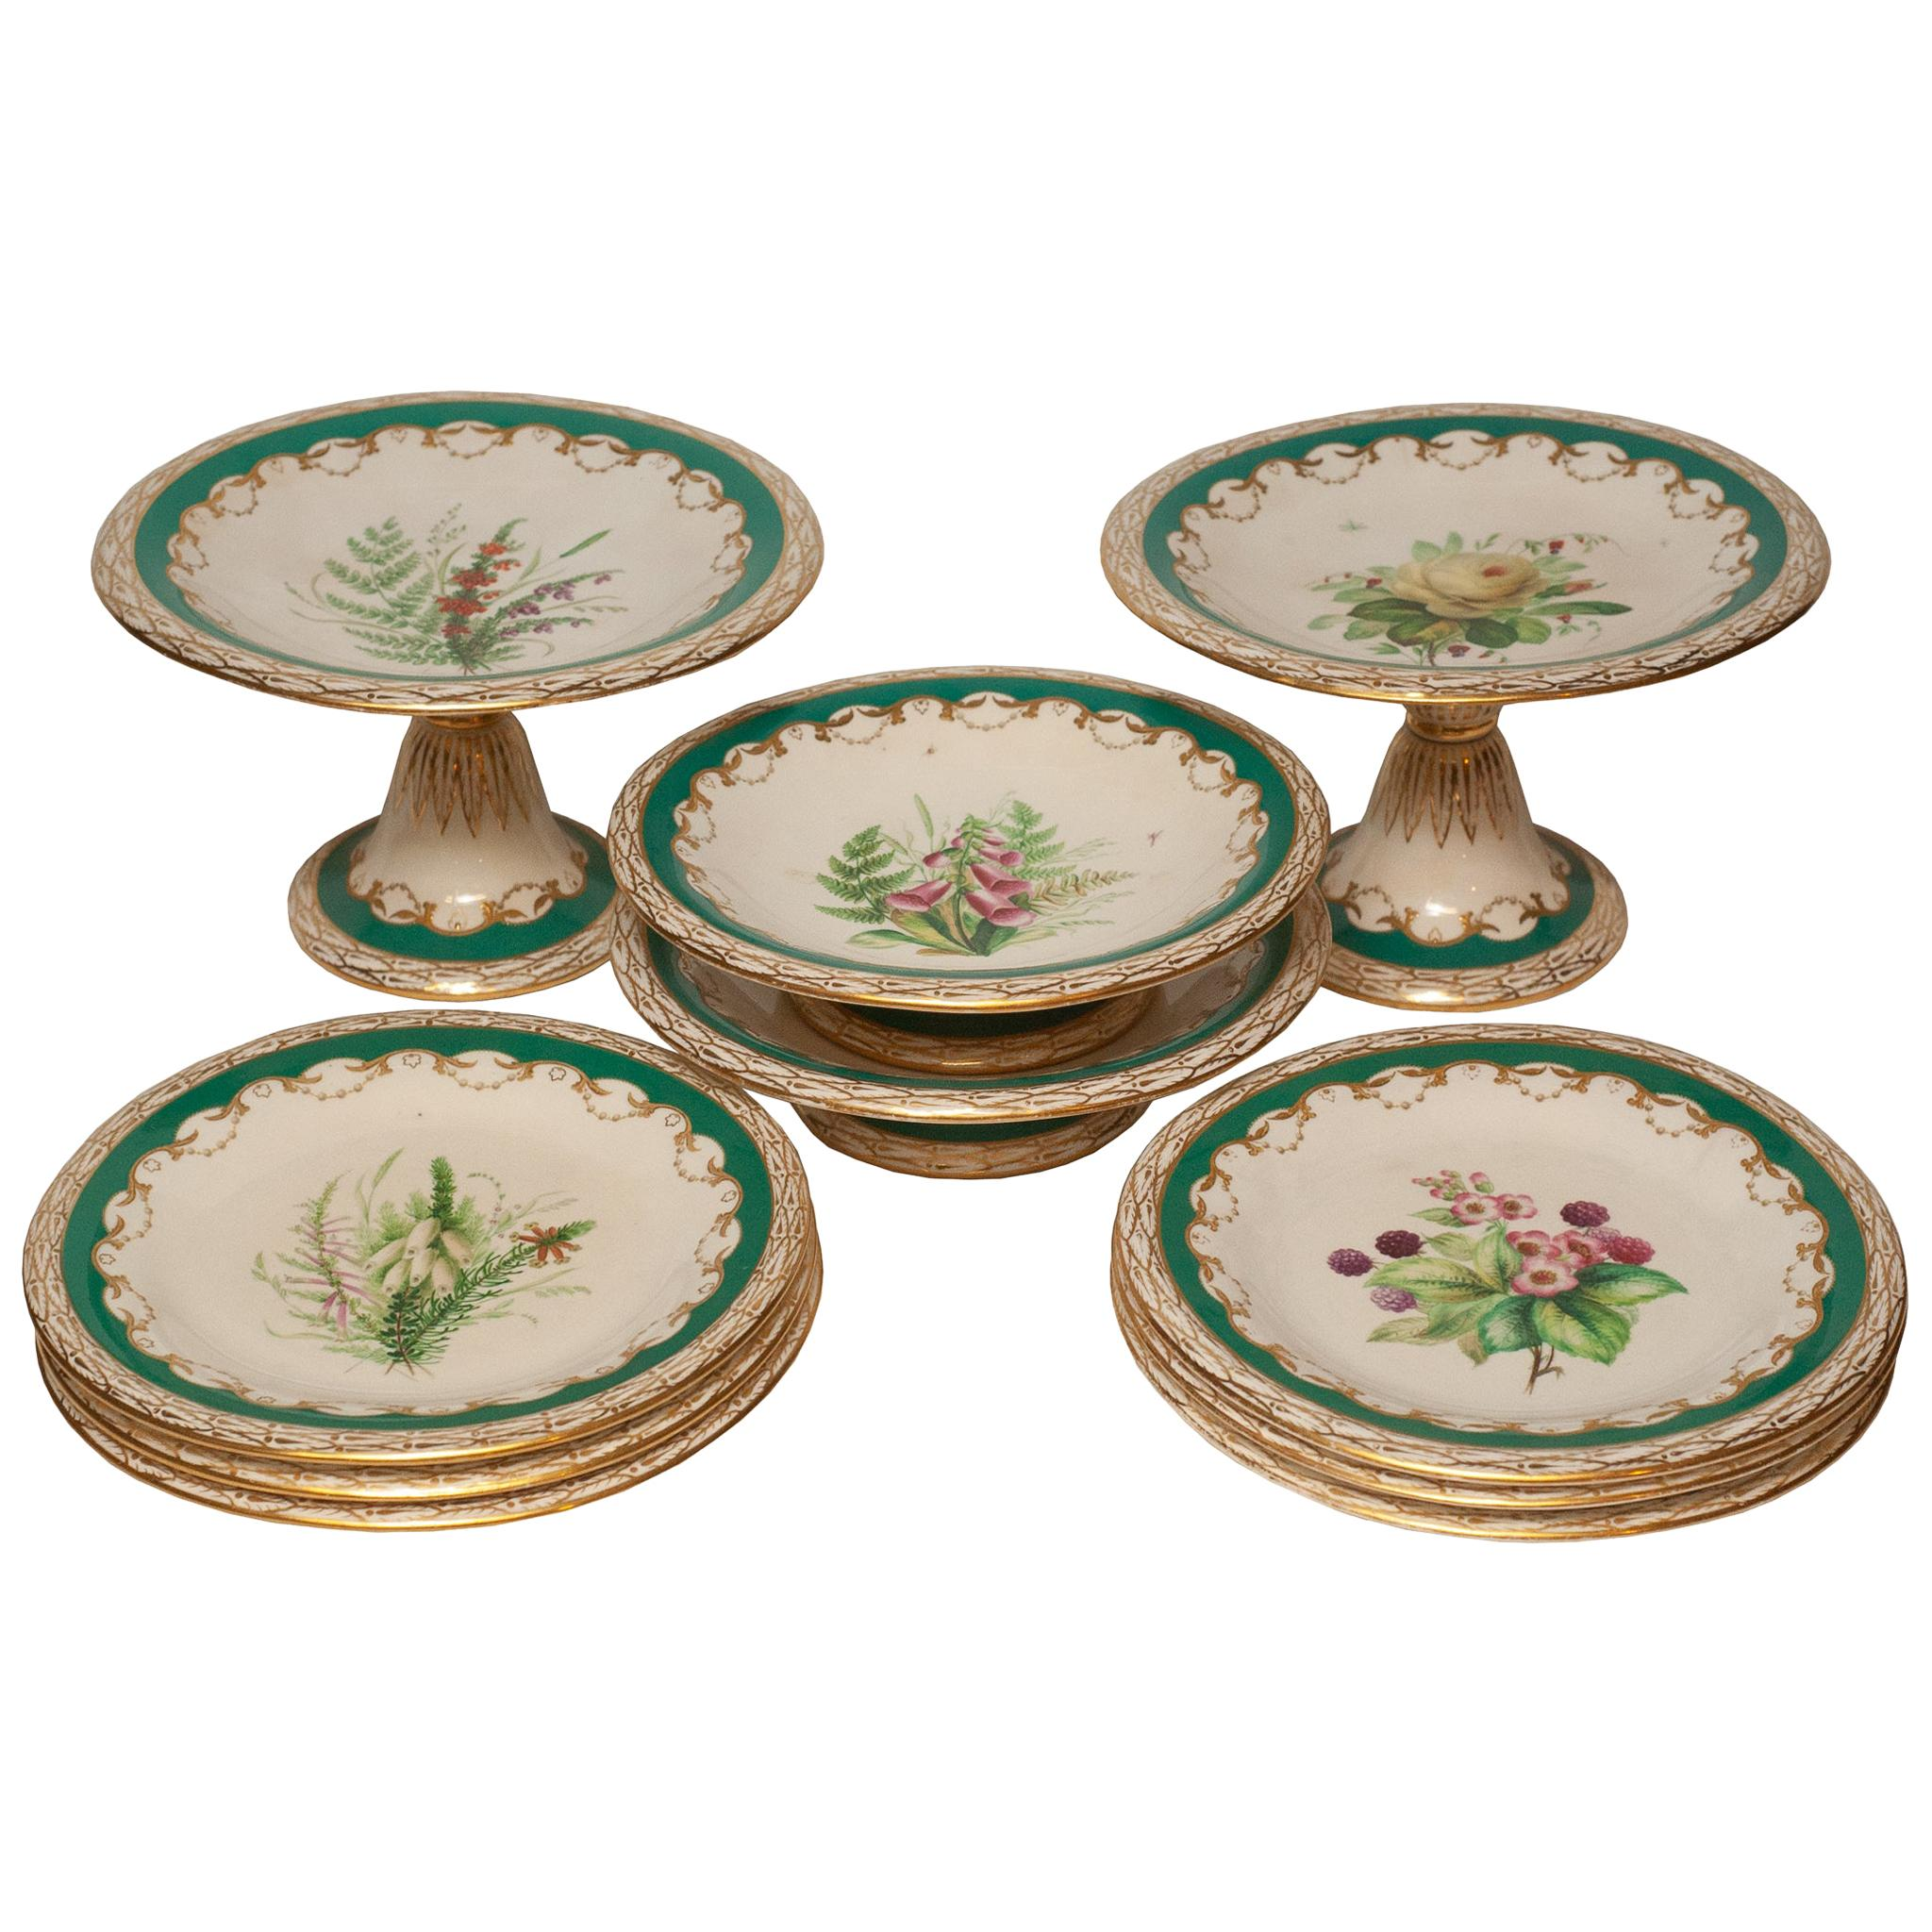 Antique English Floral Dishes Set of Tall and Short Tazzas and Dessert Plates